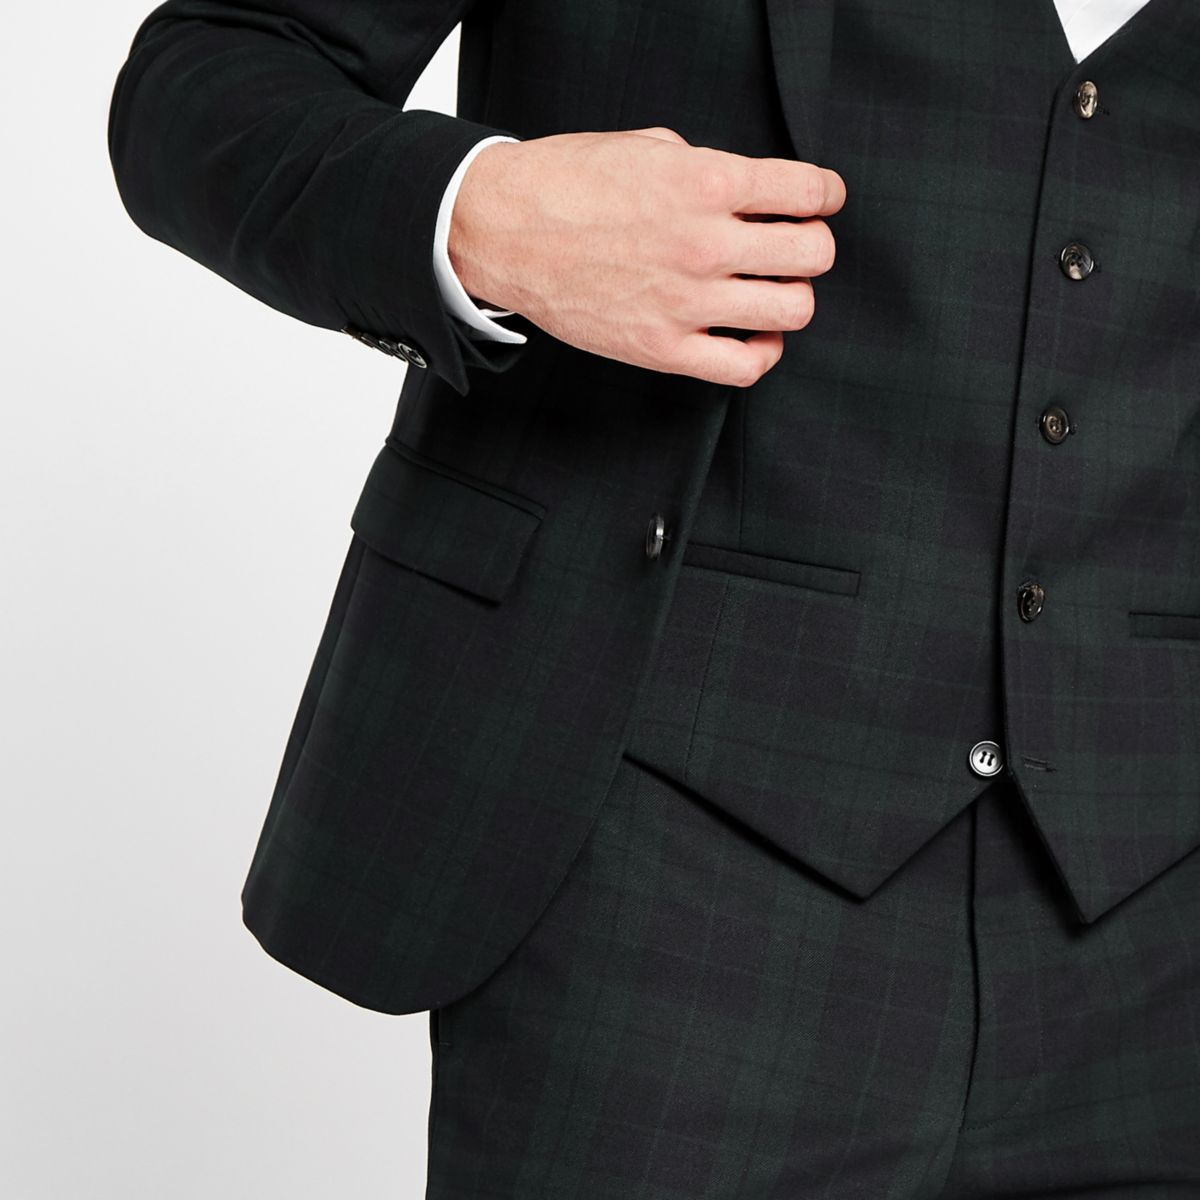 Green plaid check suit vest